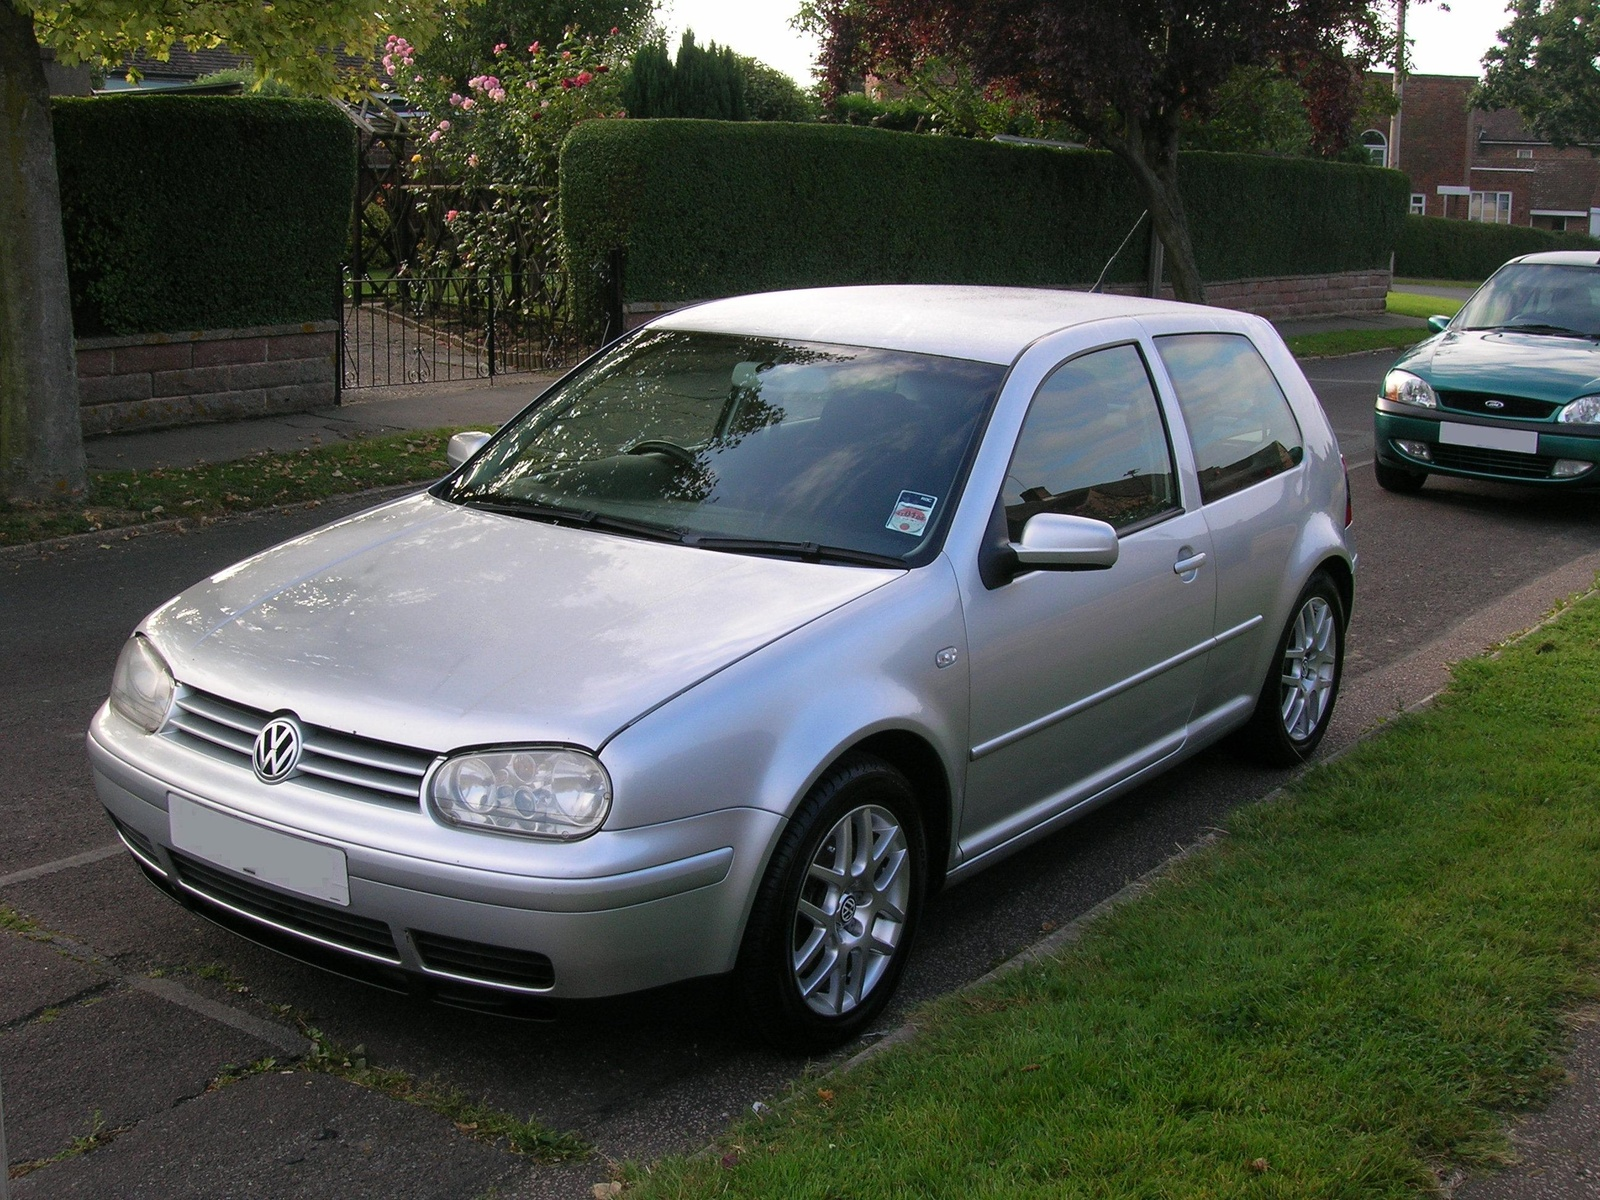 Volkswagen Gol model 8736 besides Volkswagen T Cross Breeze Concept Future Polo Suv Cabriolet En Direct Du Salon De Geneve 106996 together with 1088836 further Tuned Mk 4 Vw Golf R32 besides Volkswagen Golf Polo Phaeton Canyon. on future vw golf